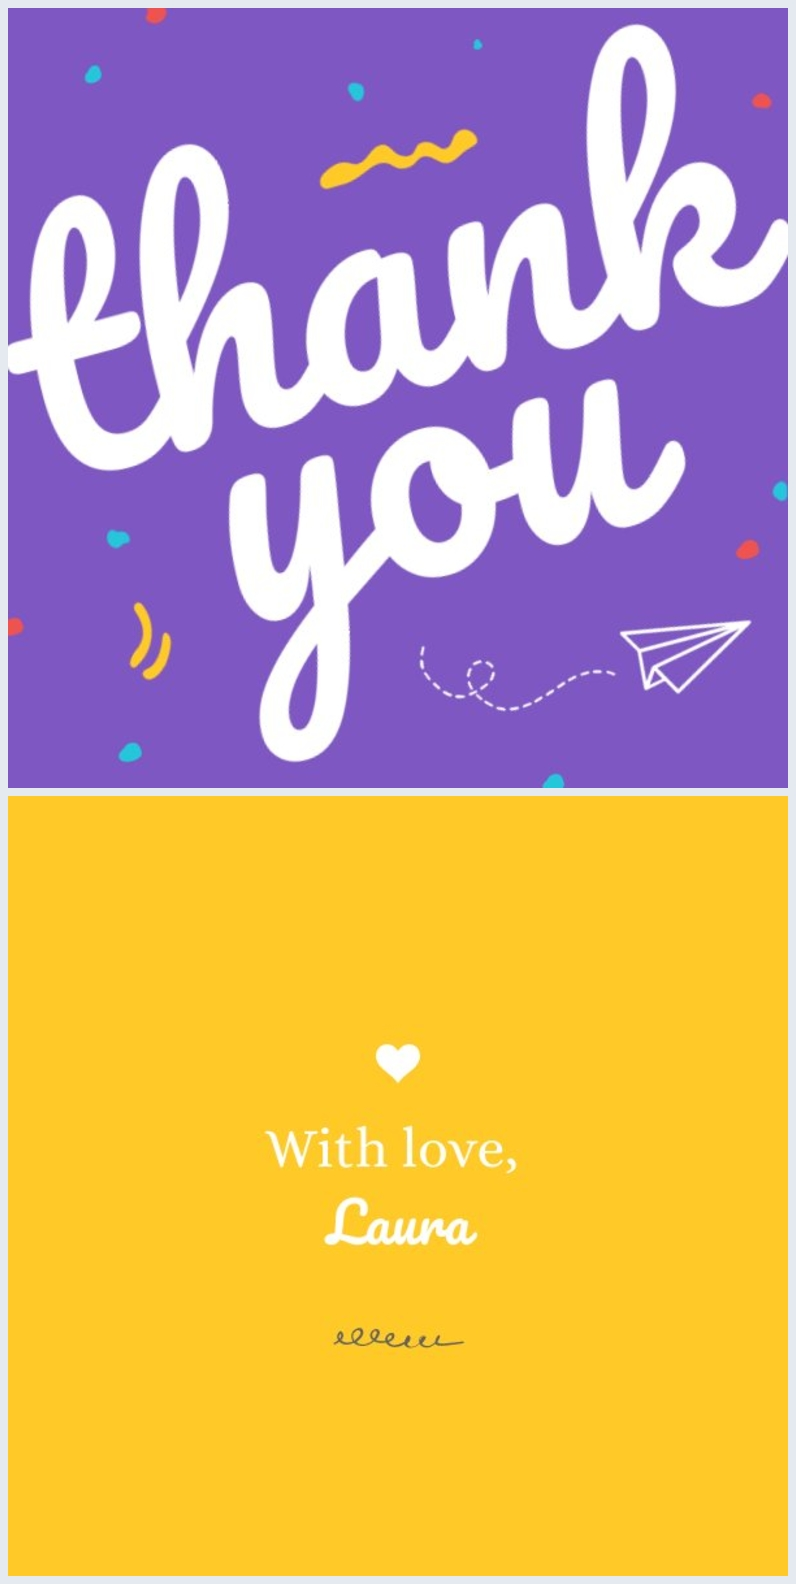 Thank You Card Design in Purple and Yellow